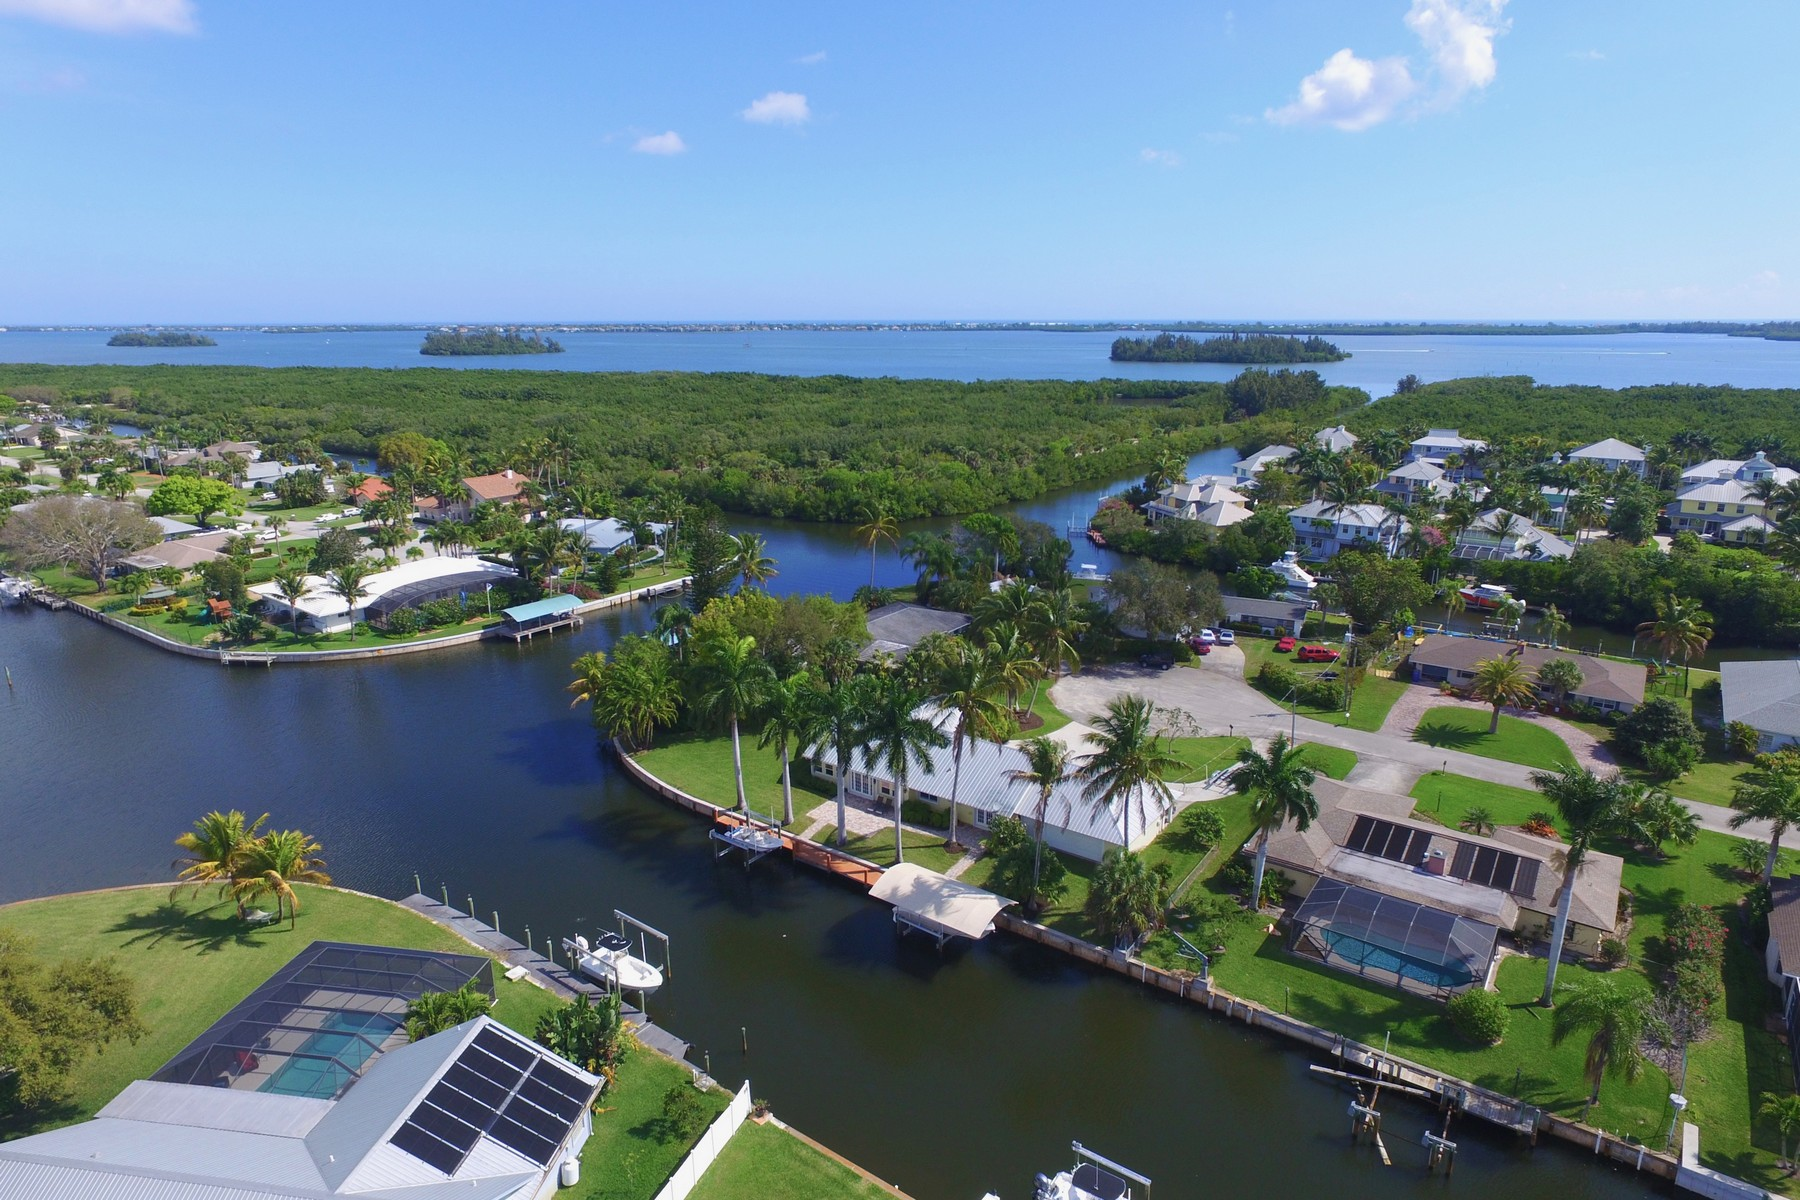 Single Family Homes for Sale at Completely Renovated Canalfront Home with Quick Access to Intracoastal! 2203 Sixth Avenue SE Vero Beach, Florida 32962 United States